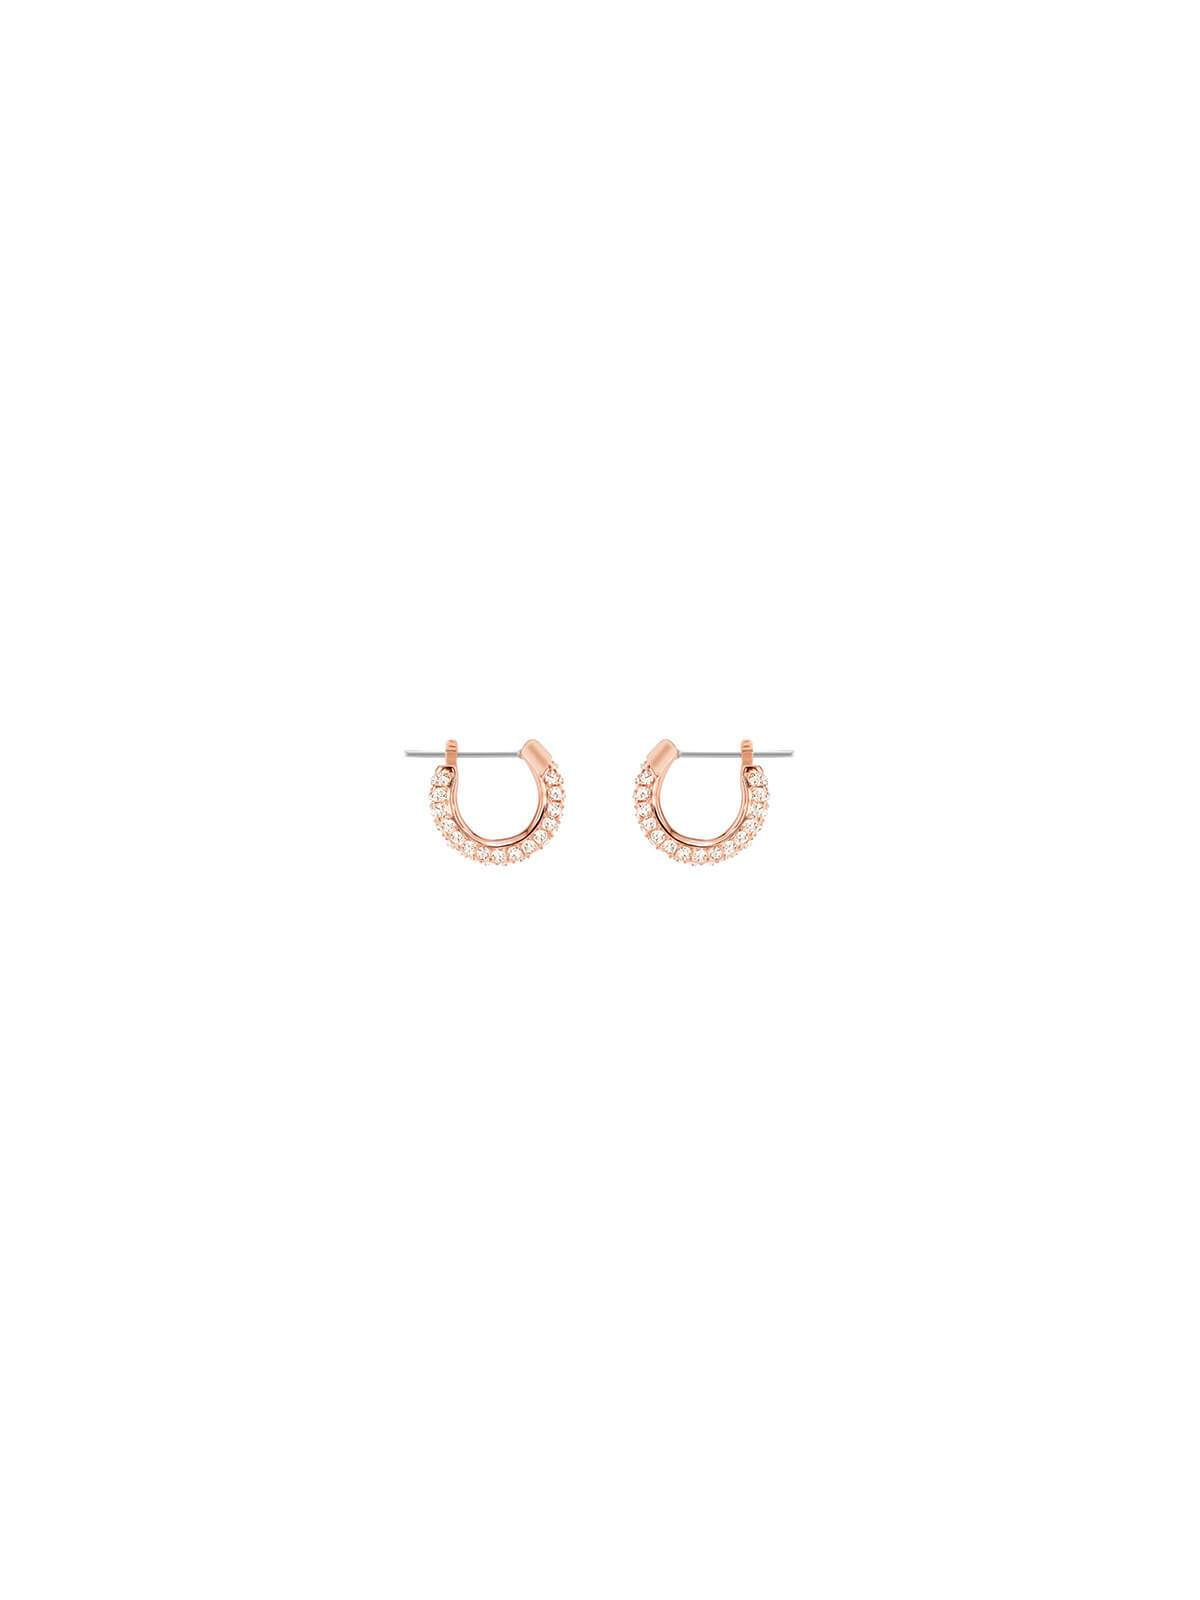 46a65849ef667 Swarovski Stone Rose Gold Plated and Clear Crystal Small Hoop Earrings